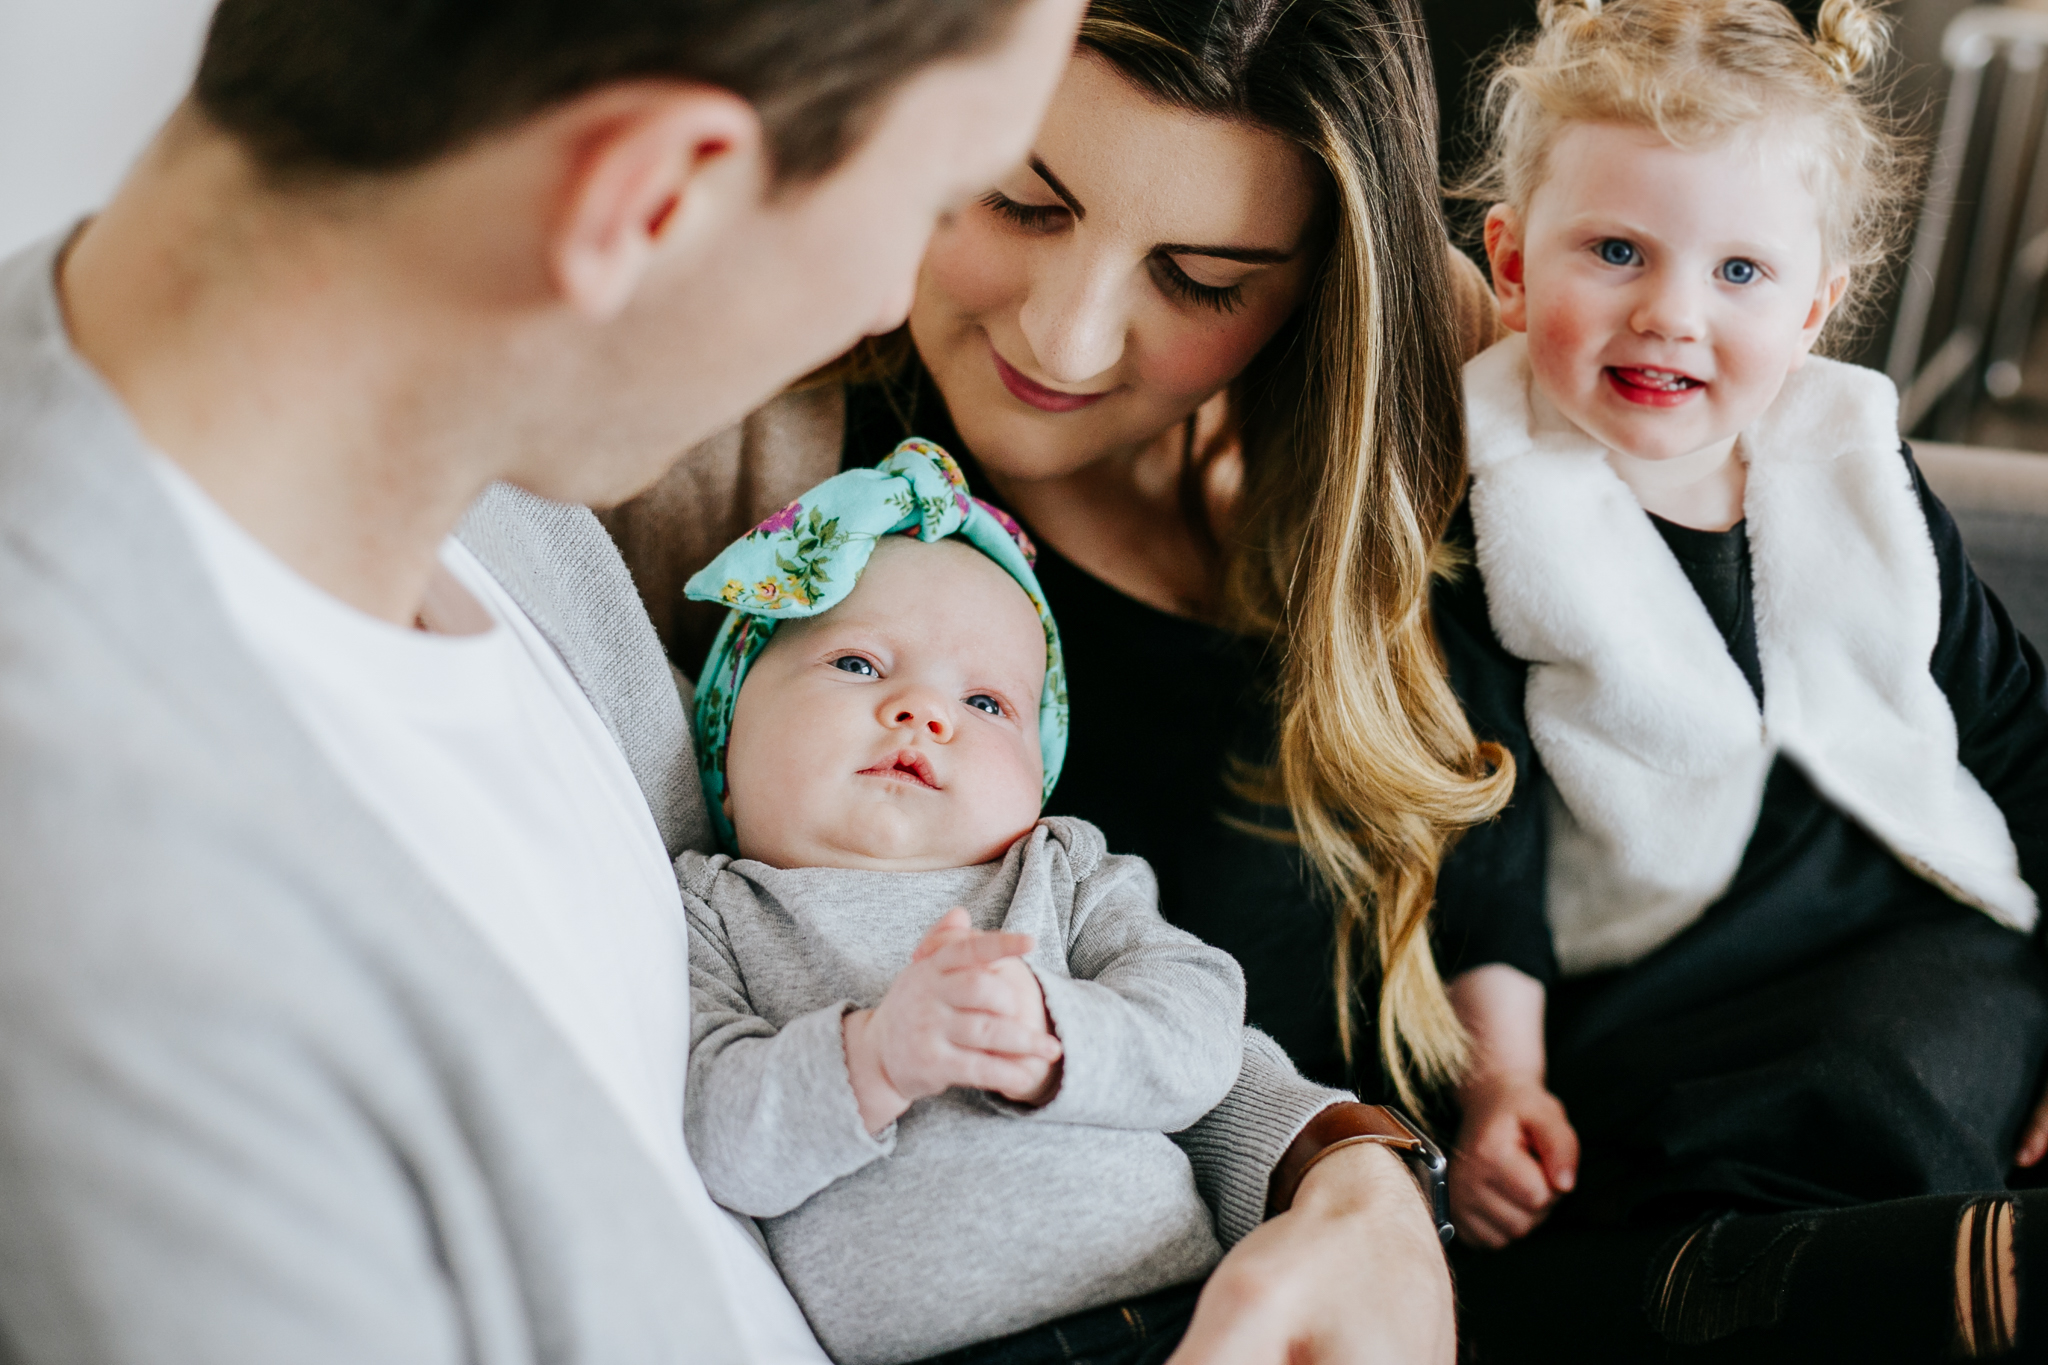 lethbridge-photographer-love-and-be-loved-photography-thornborough-family-lifestyle-session-image-picture-photo-22.jpg